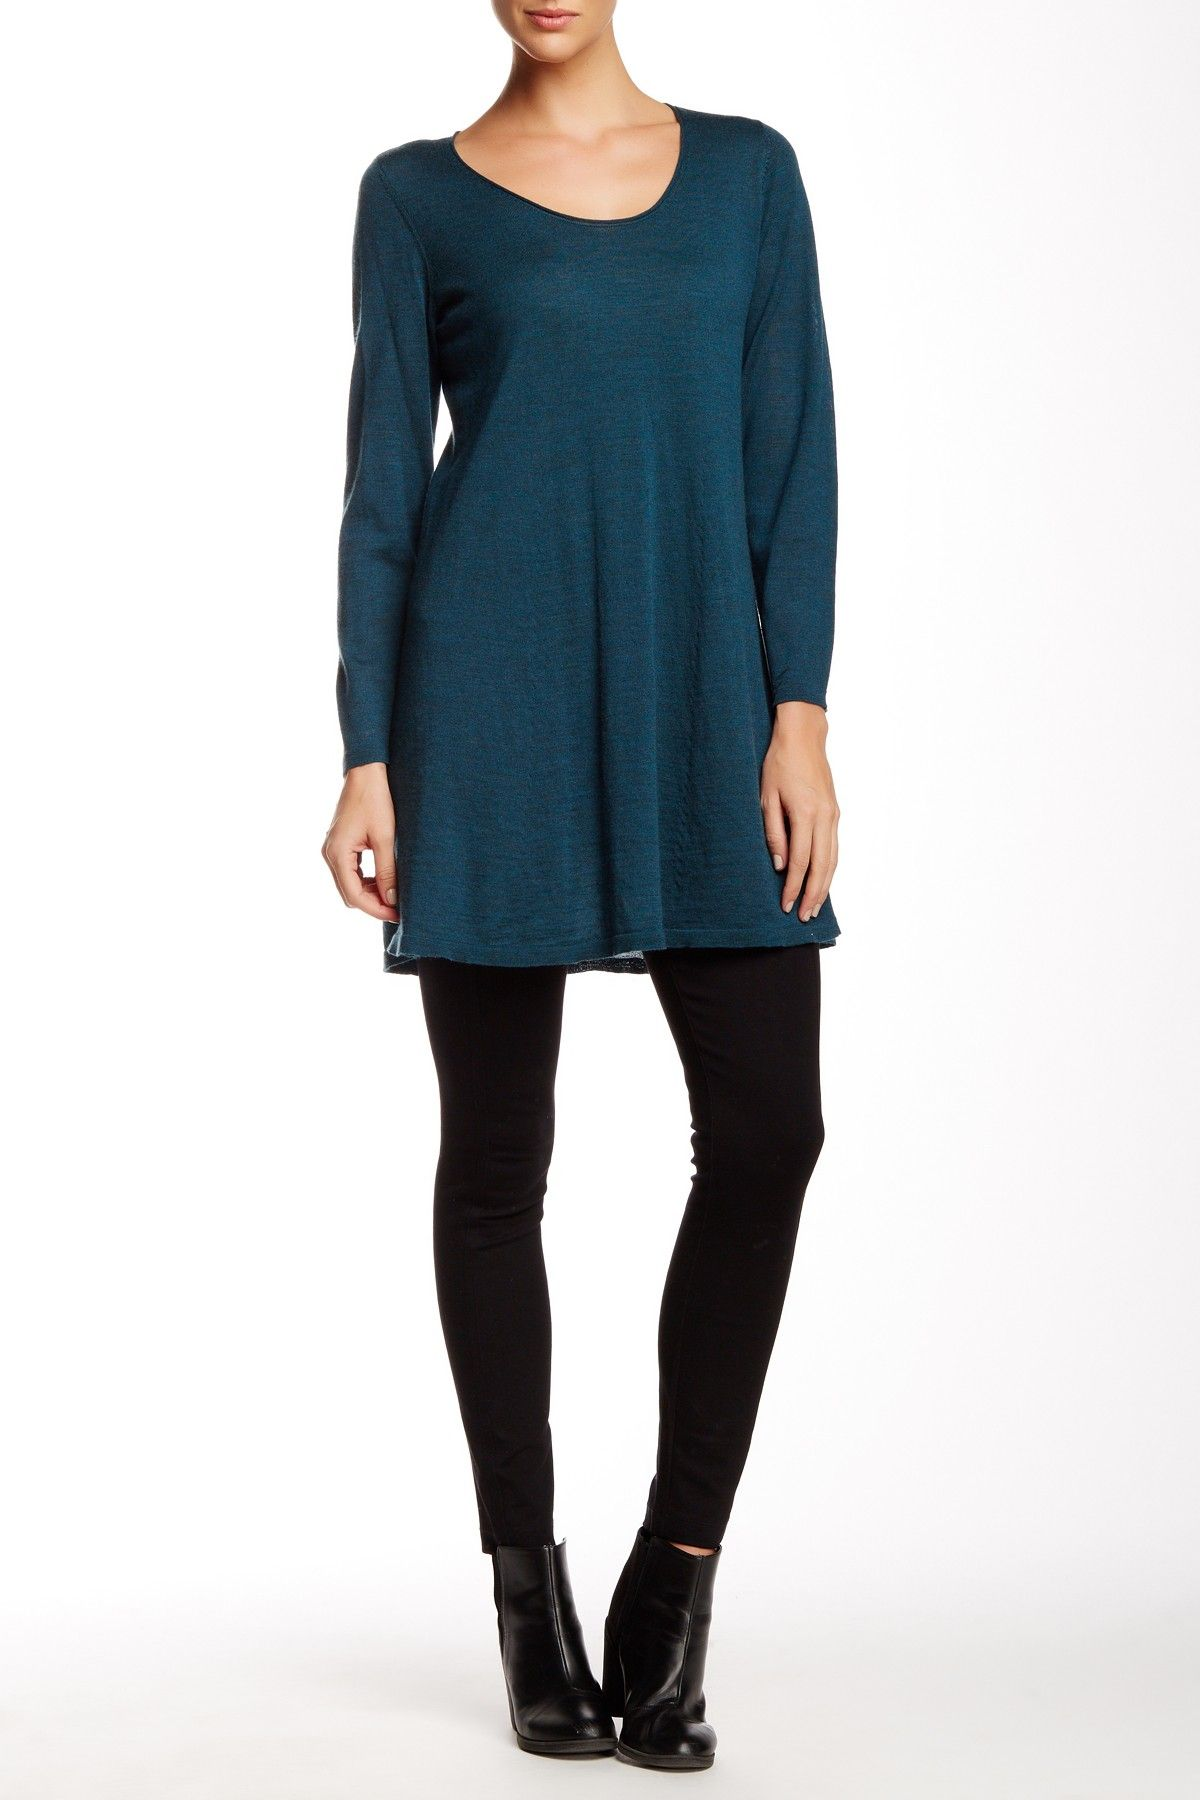 sweater of eileen merino x nordstrom boxy rack com wool good bateau neck fisher photo image pnintelligentdialogue